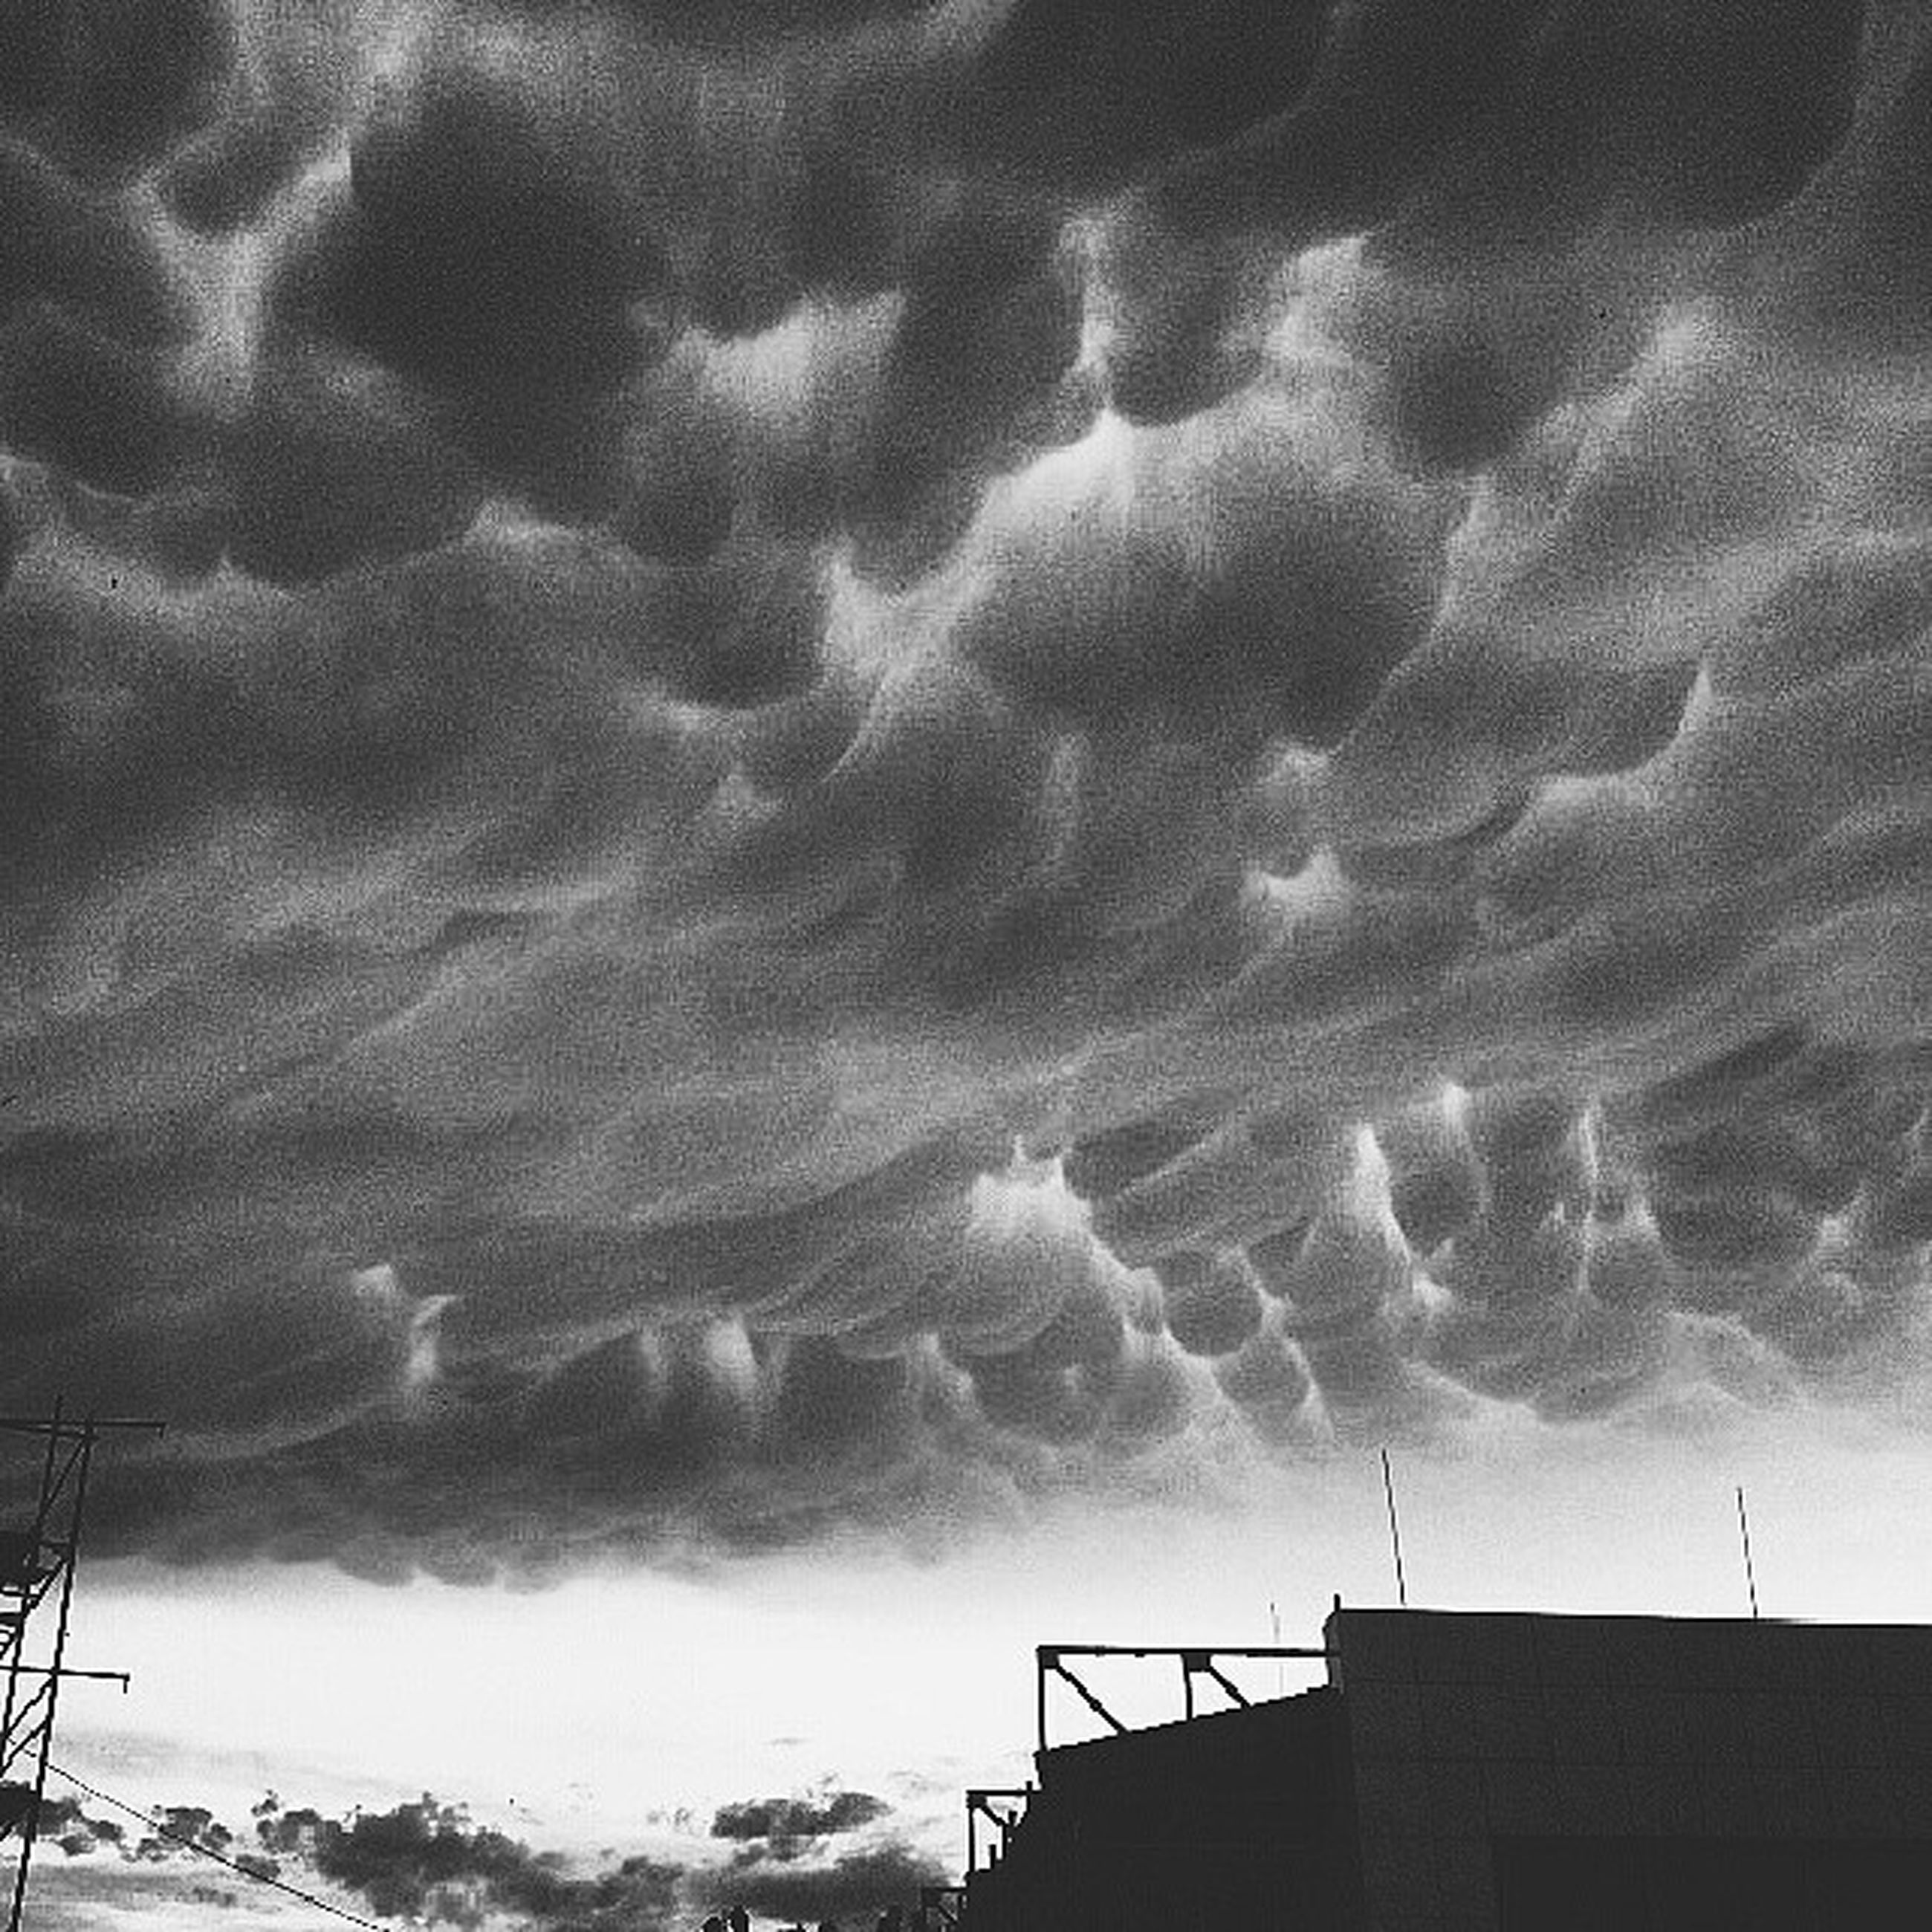 sky, cloud - sky, cloudy, building exterior, weather, built structure, low angle view, architecture, overcast, storm cloud, cloud, nature, house, beauty in nature, scenics, high section, outdoors, silhouette, roof, dusk